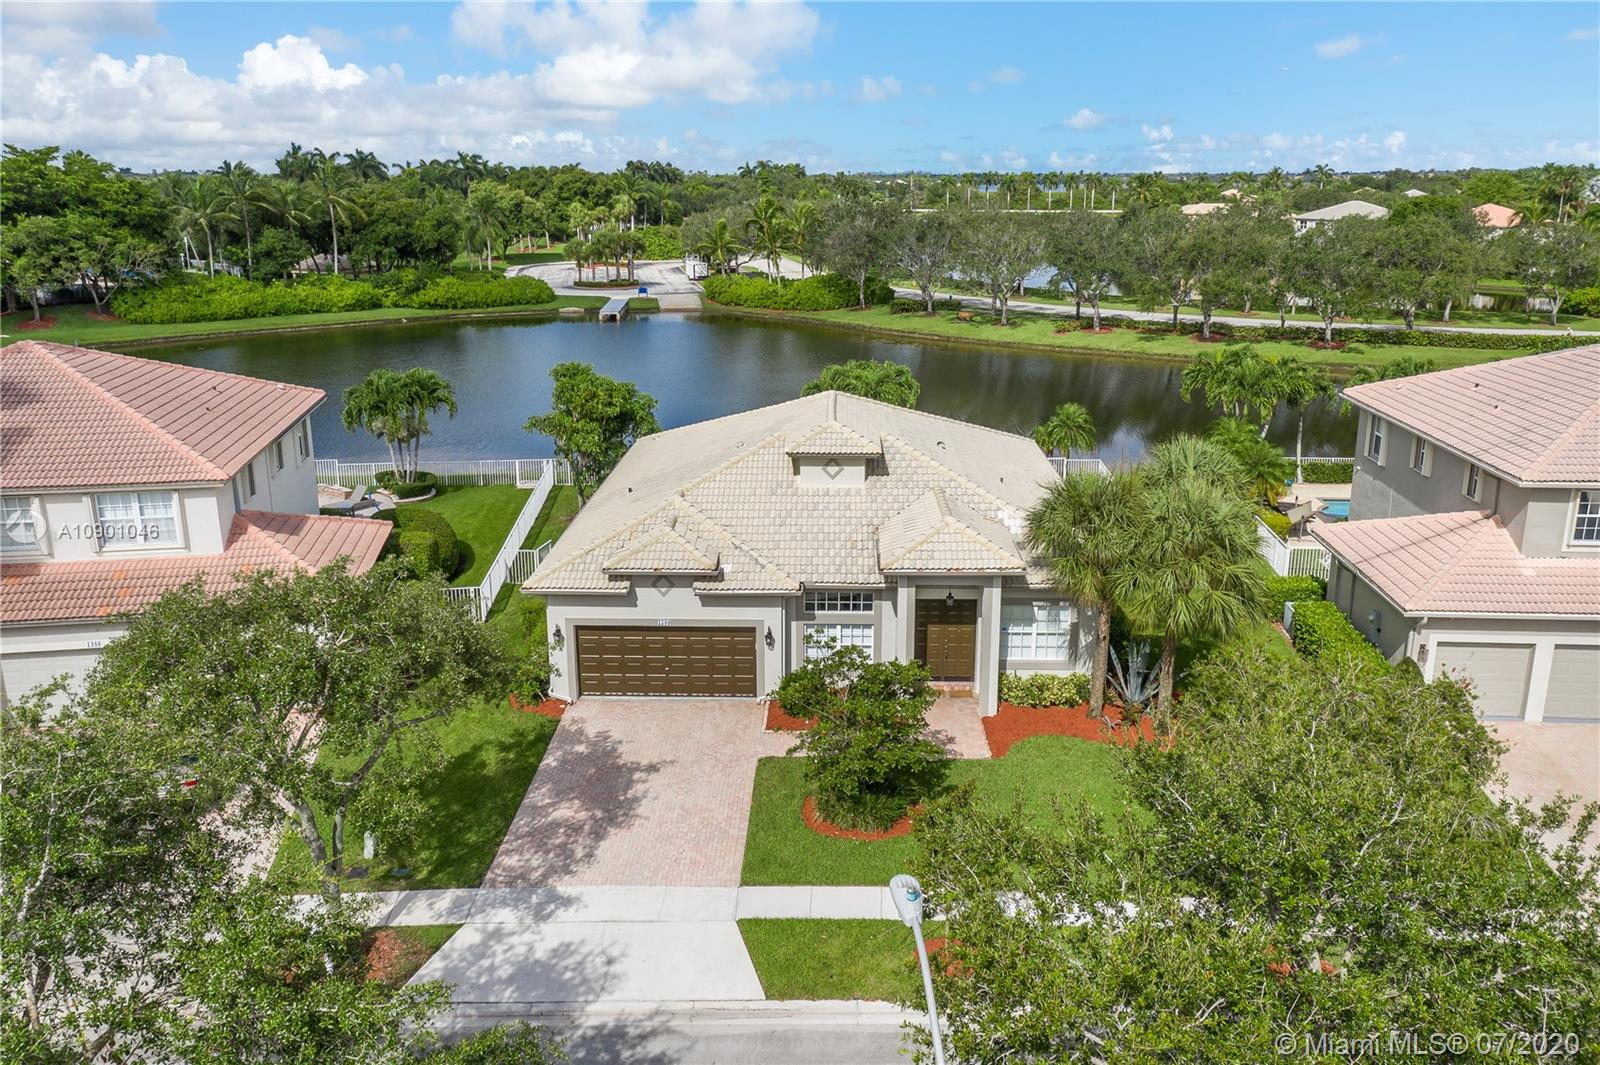 """***STUNNING***RENOVATED***LAKEFRONT***ANASTASIA MODEL HOME***BREAKERS at PEMBROKE ISLES** Contemporary Remodeled Kitchen, Quartz Countertops, Stainless Steel Appliances, Wine Service, Serving Bar, Spacious Master Suite, His & Hers Walk-in Closets, Dual Vanities, Roman Tub, Modern Vinyl Plank Flooring, Custom Lighting, Expansive Covered Patio, Fenced Grounds ***TRANQUIL WIDE LAKE VIEWS*** Residents of Pembroke Isles Enjoy: Fitness Center, Aerobics, Sauna, Tennis, Racquetball, Basketball, Soccer, Beach Volleyball, Swimming Pools, Jacuzzis, Fishing Piers, Walking/Biking Trails, Covered Picnic Areas and Children's Playgrounds.  HOA Includes: Security, Landscaping, Cable, Internet & Alarm Monitoring.  Convenient to Shopping, Dining, Travel and """"A"""" Rated Schools."""